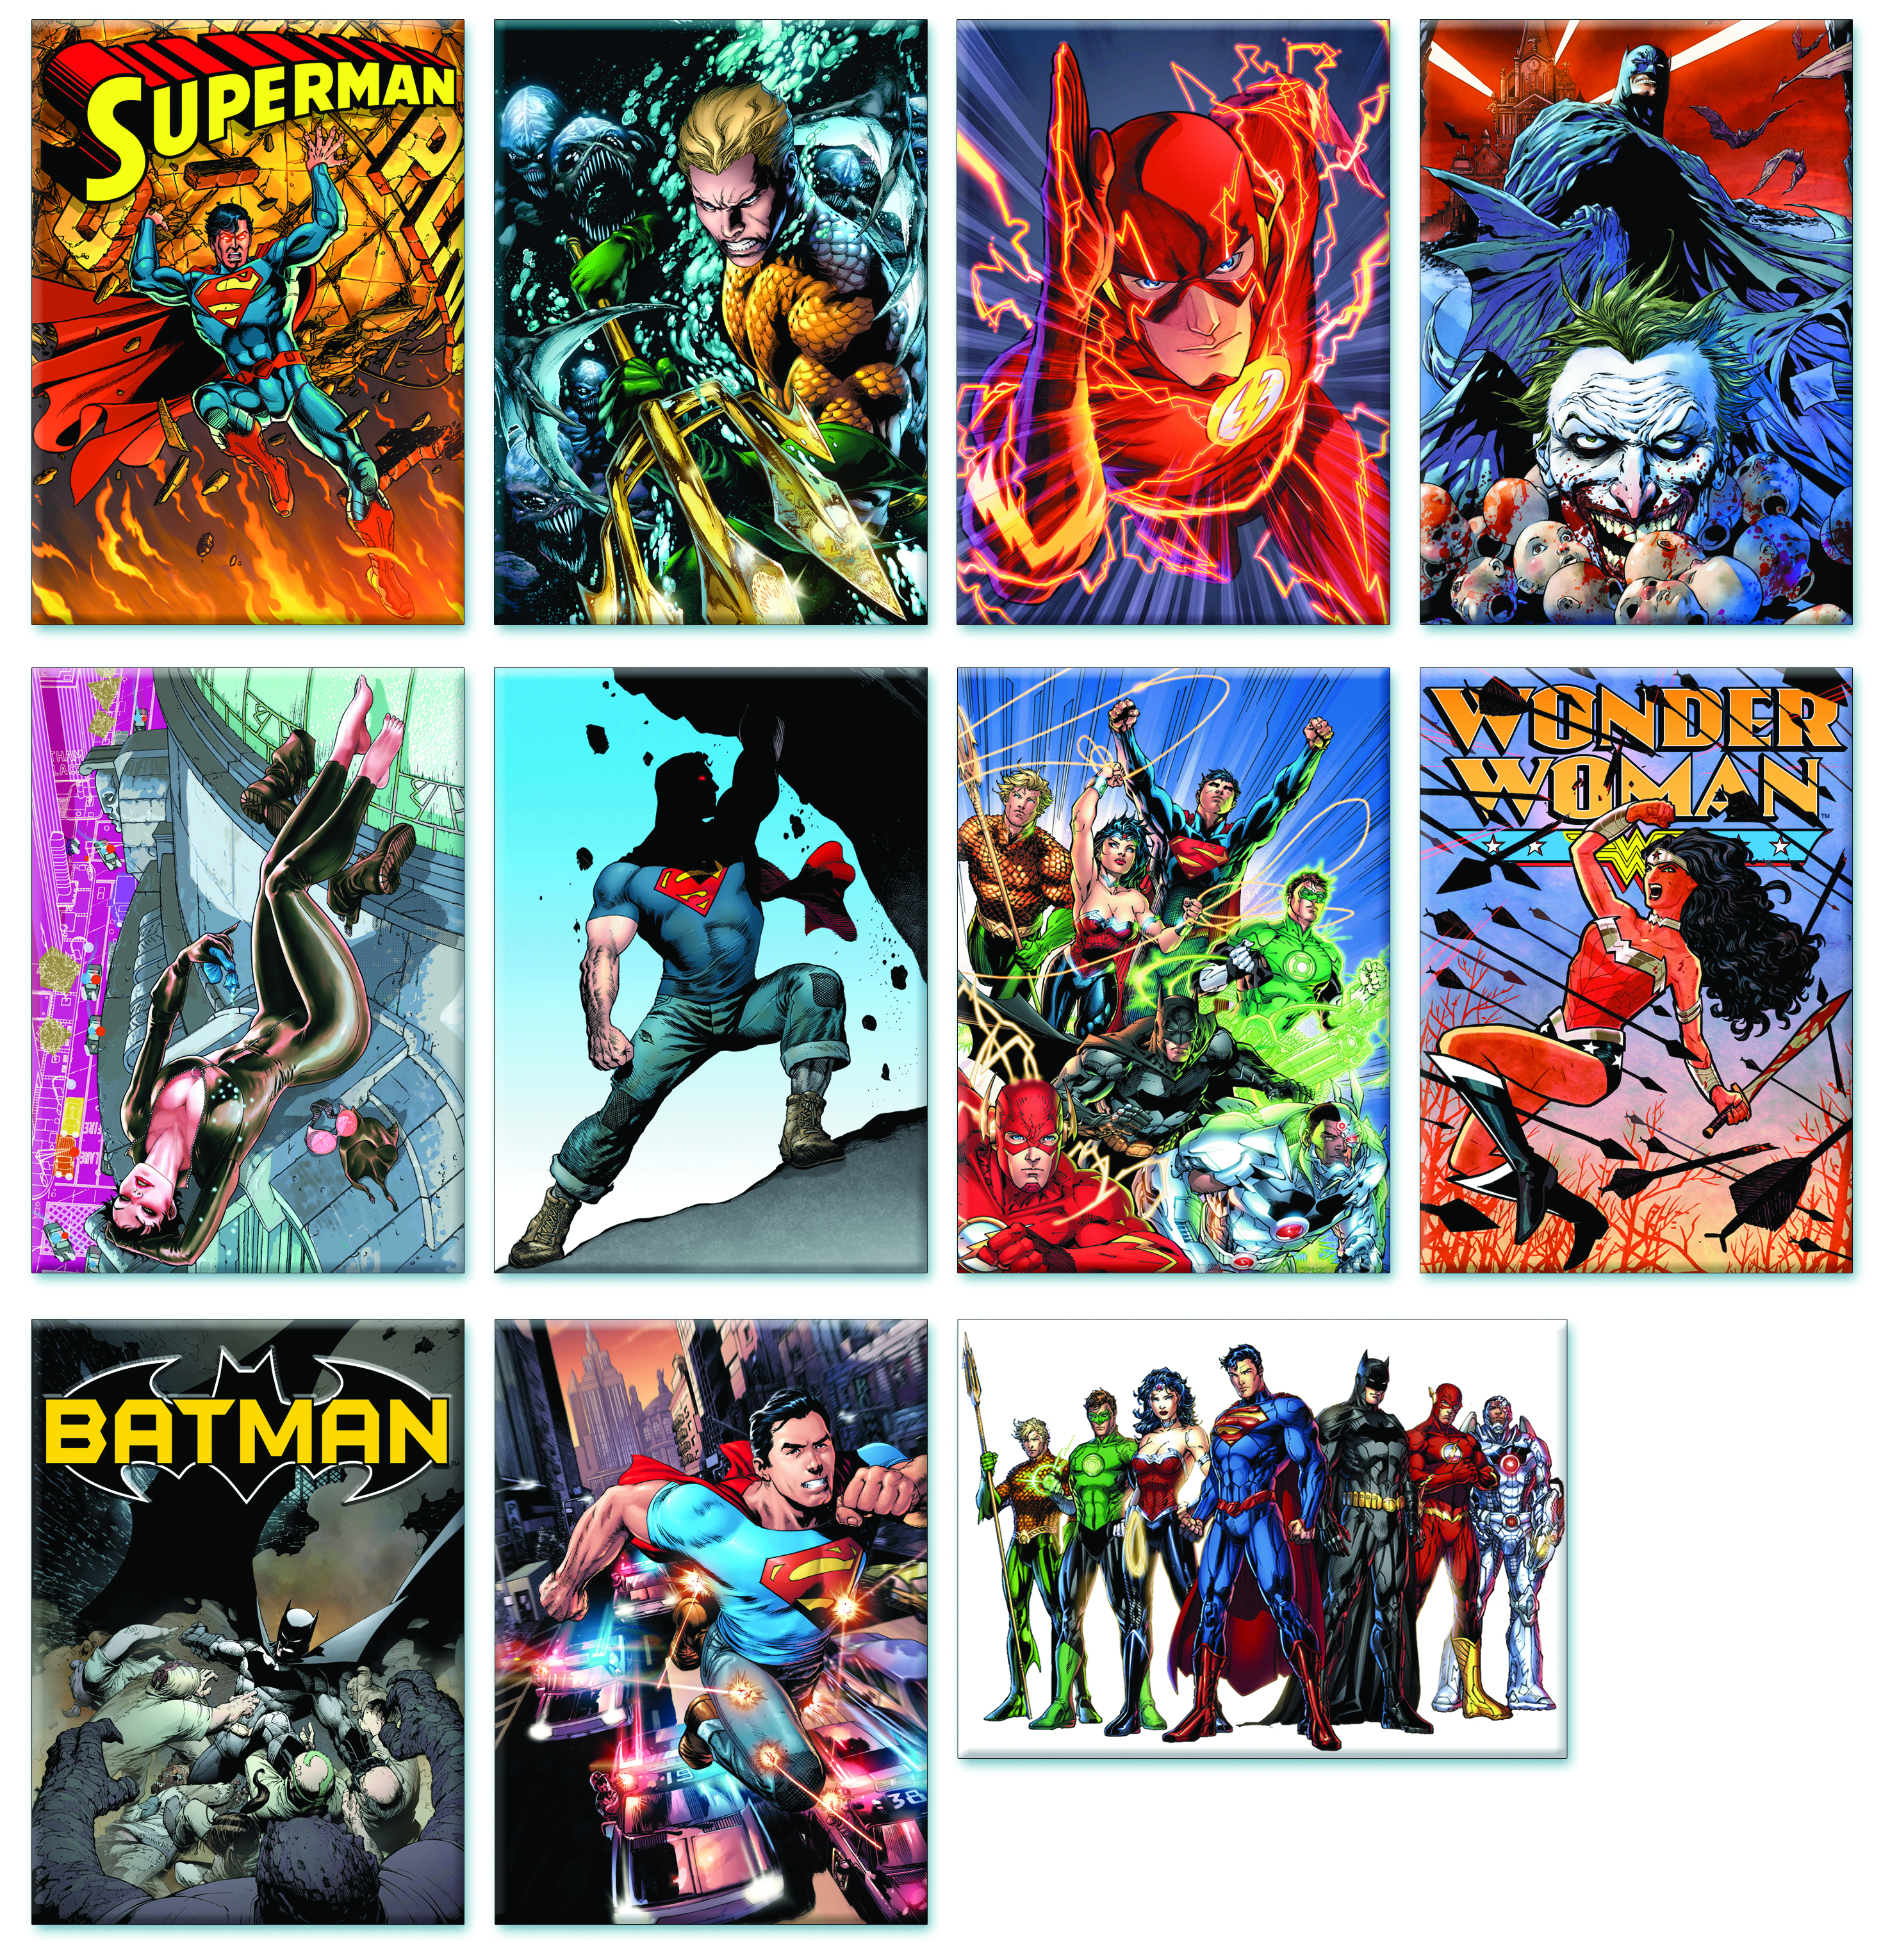 DC COMICS NEW 52 11PC MAGNET SET